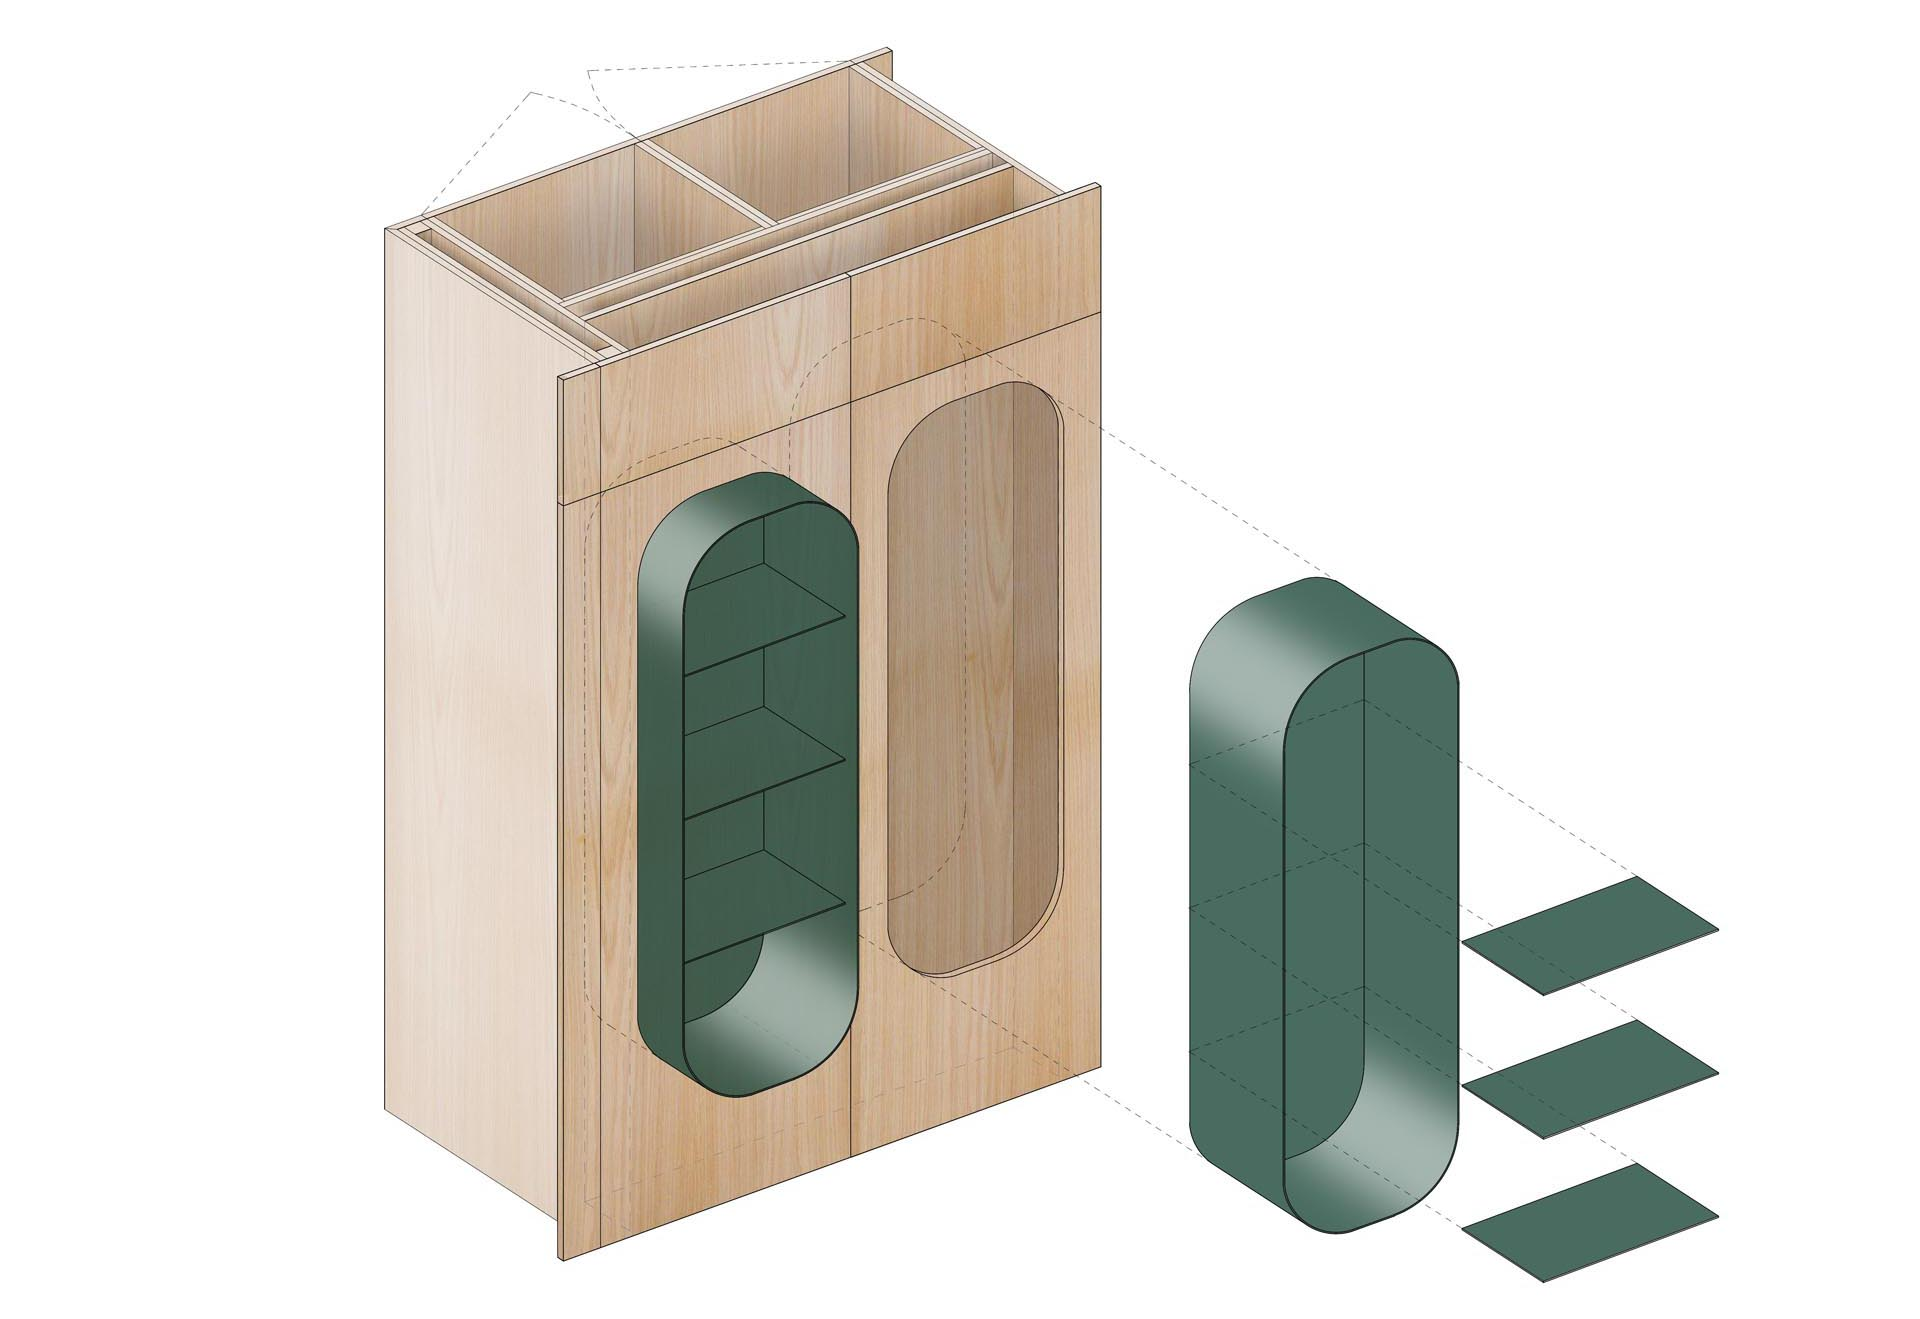 A diagram that shows partially built-in shelving.